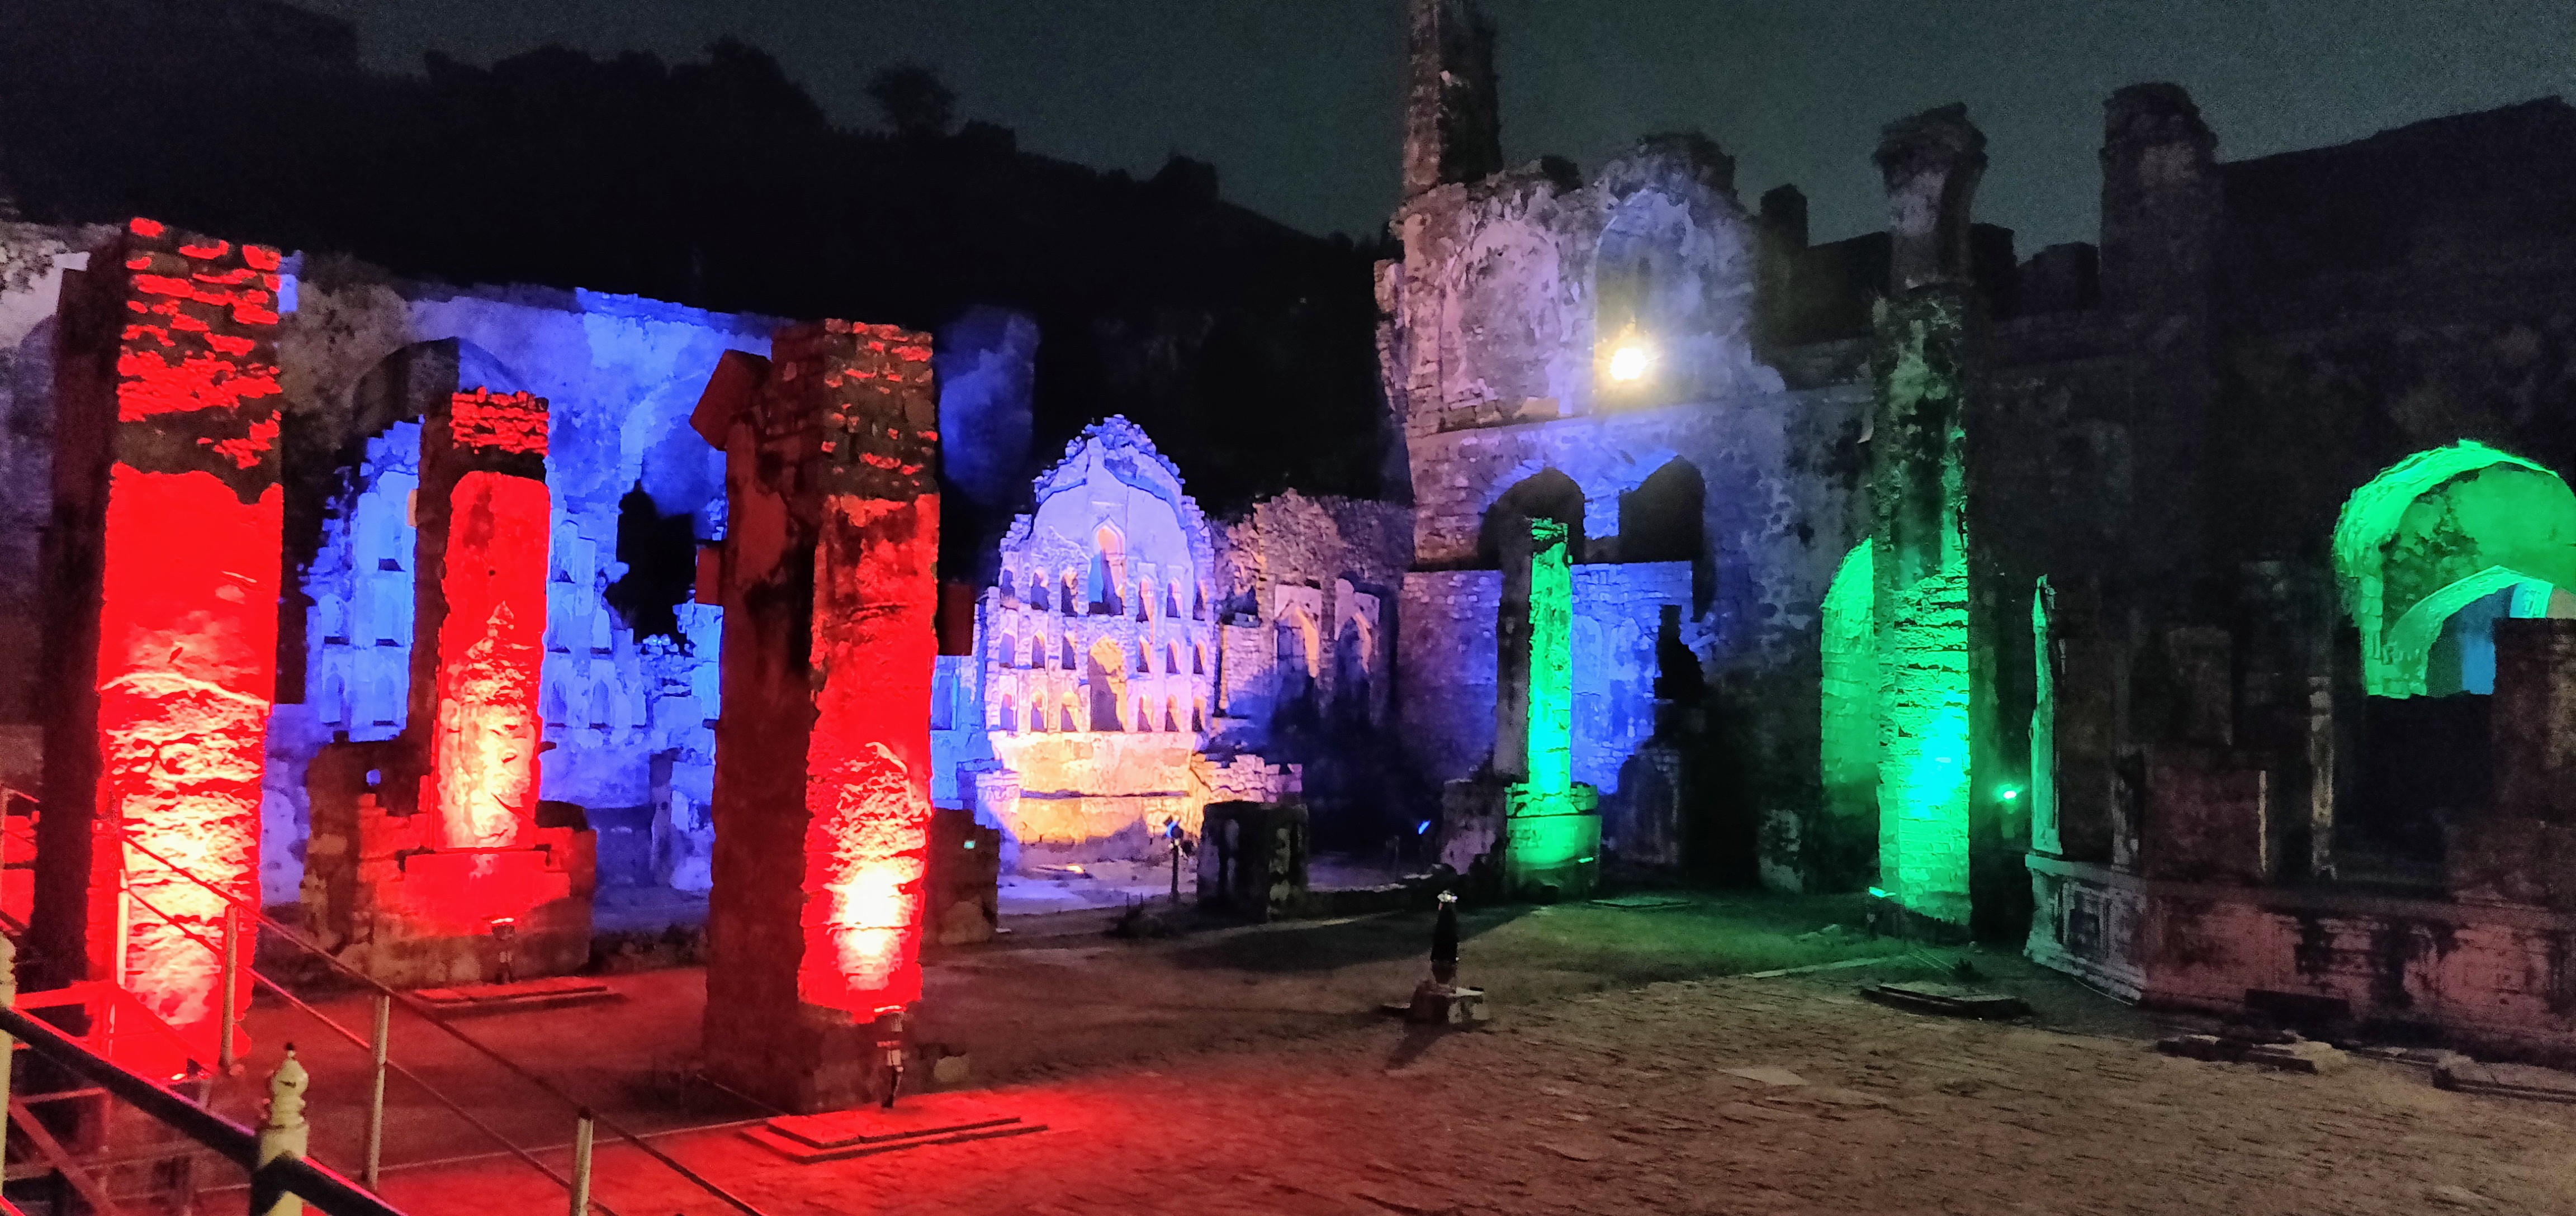 The Light and Sound show in progress at the Rani Mahal in the Golconda fort